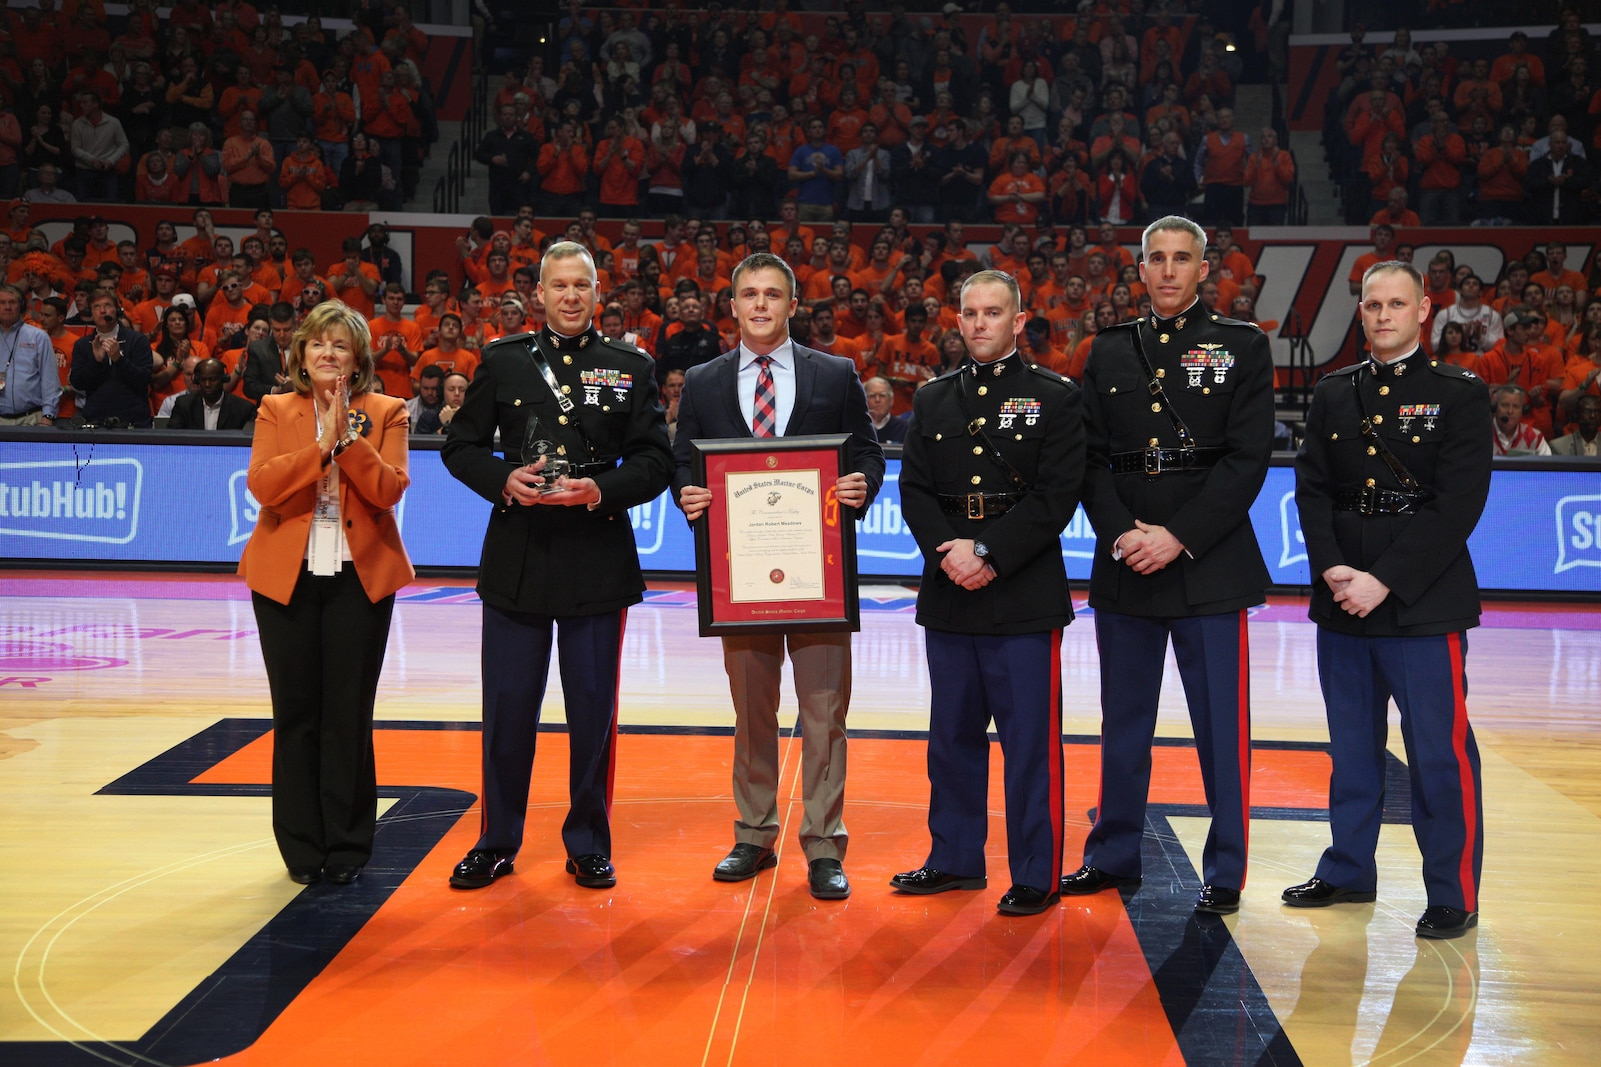 Jordan Meadows is presented the Commandant of the Marine Corps Trophy by members of Recruiting Station St. Louis Jan. 31 at the University of Illinois Basketball game for finishing top of his class of 220 Officer Candidates. Jordan's superb physical fitness, self-less leadership and successful academics distinguished him as the number one candidate.